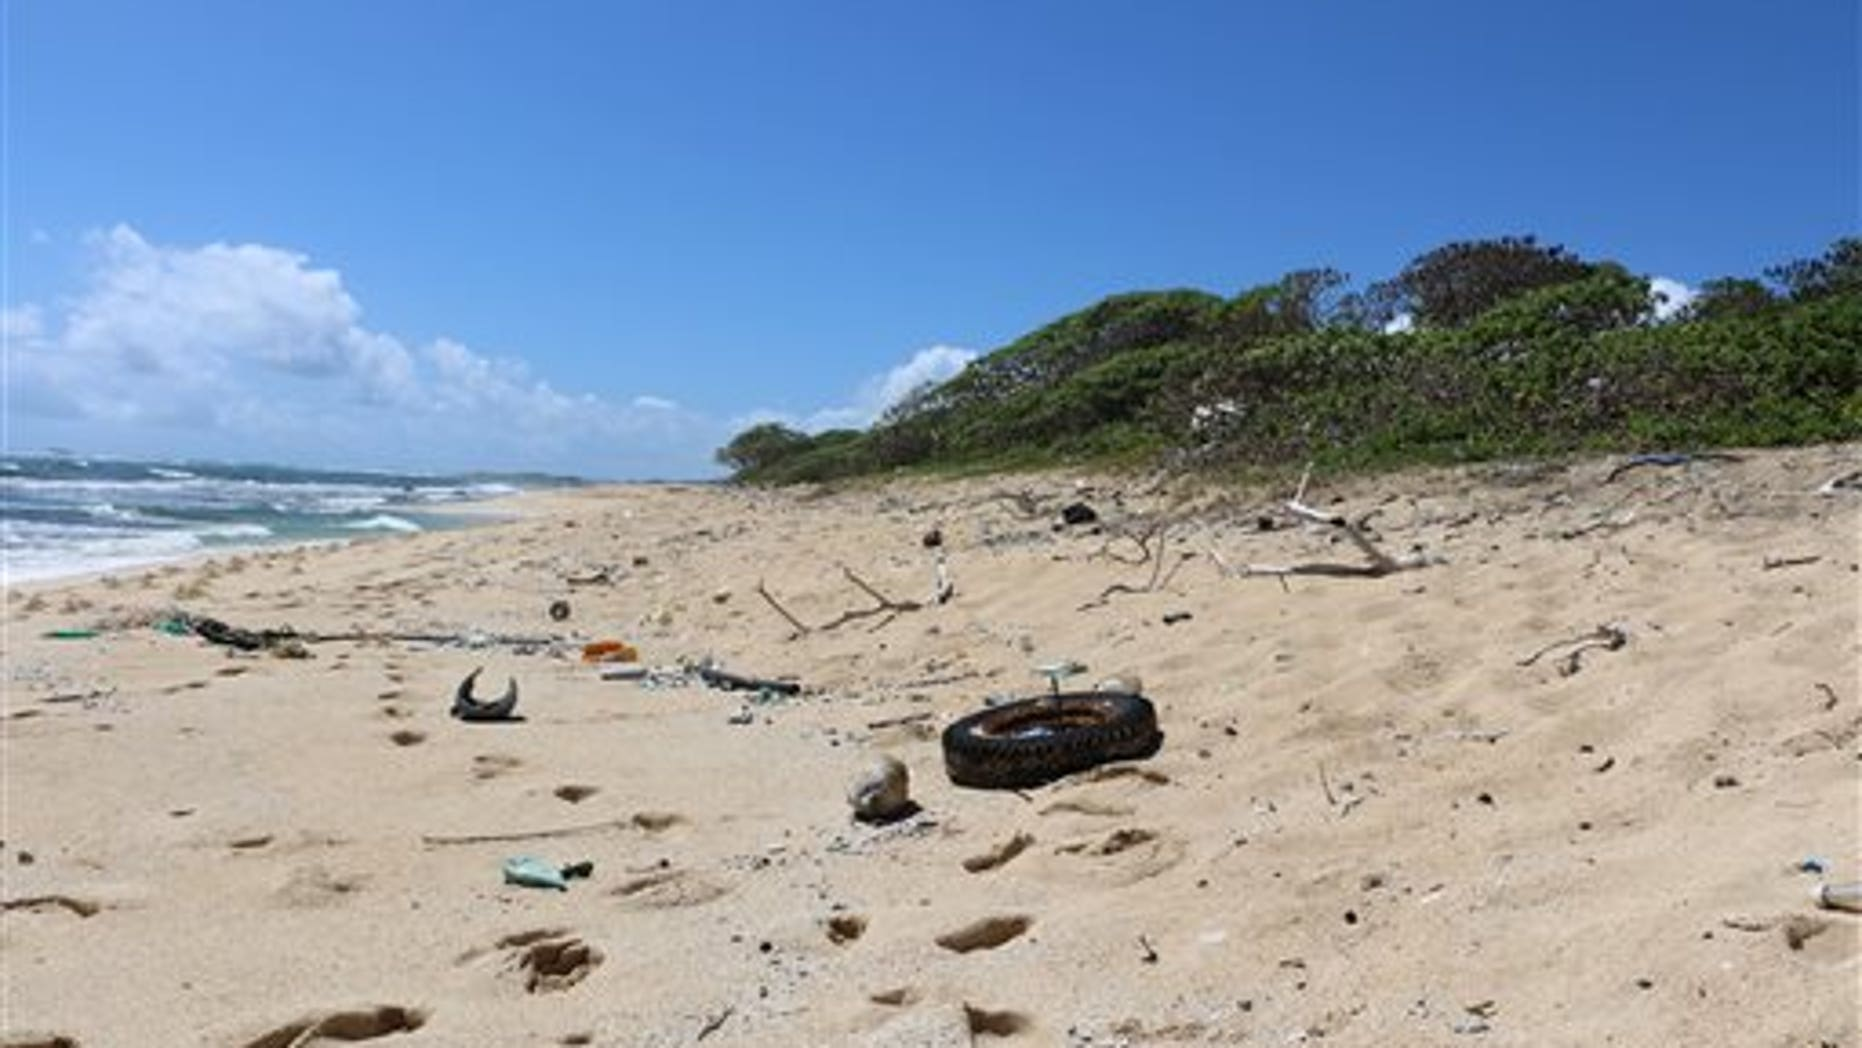 In this May 5, 2016 image provided by the state of Hawaii, ocean debris accumulates in Kahuku, Hawaii on the North Shore of Oahu.